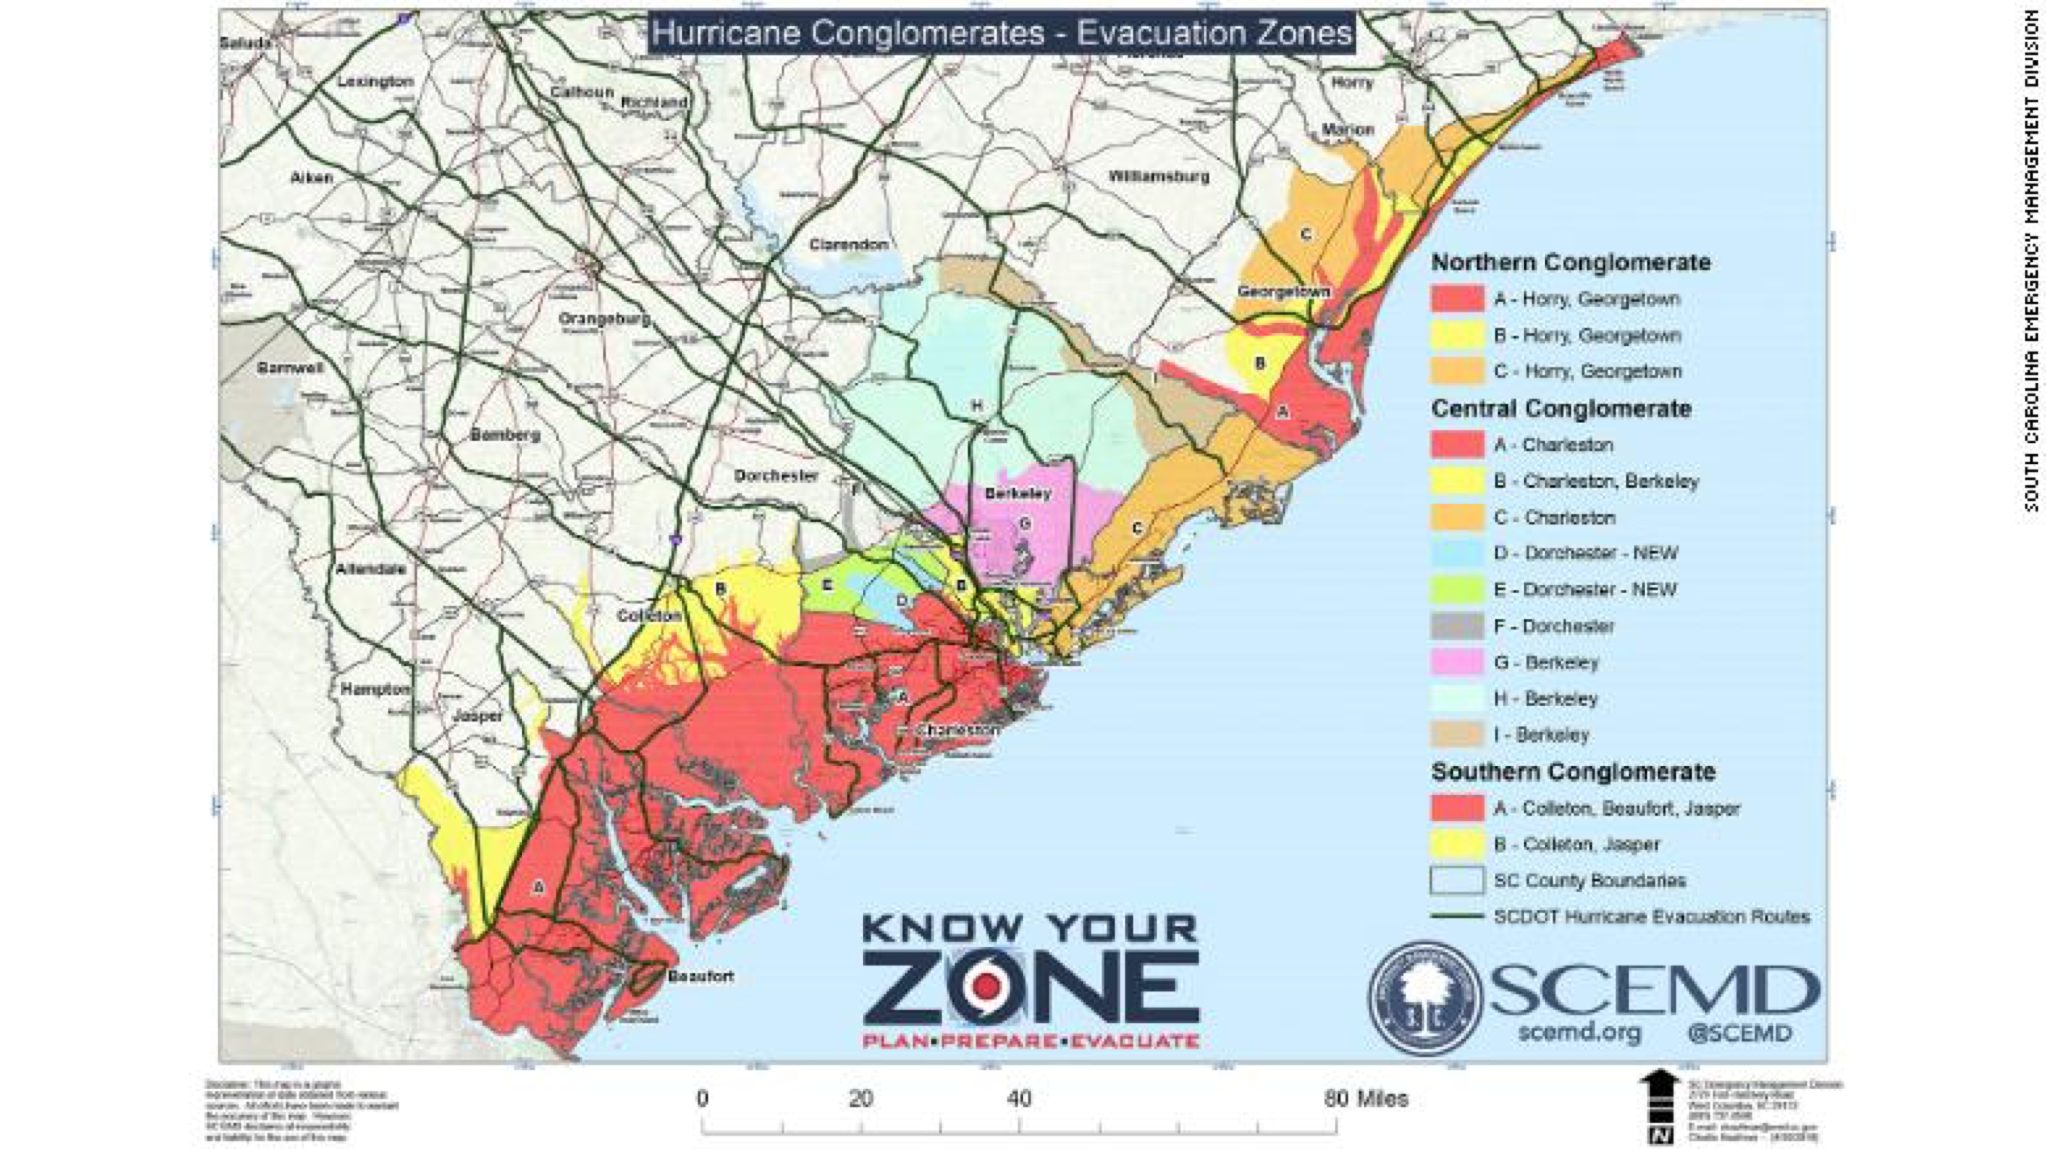 Hurricane Florence affected areas